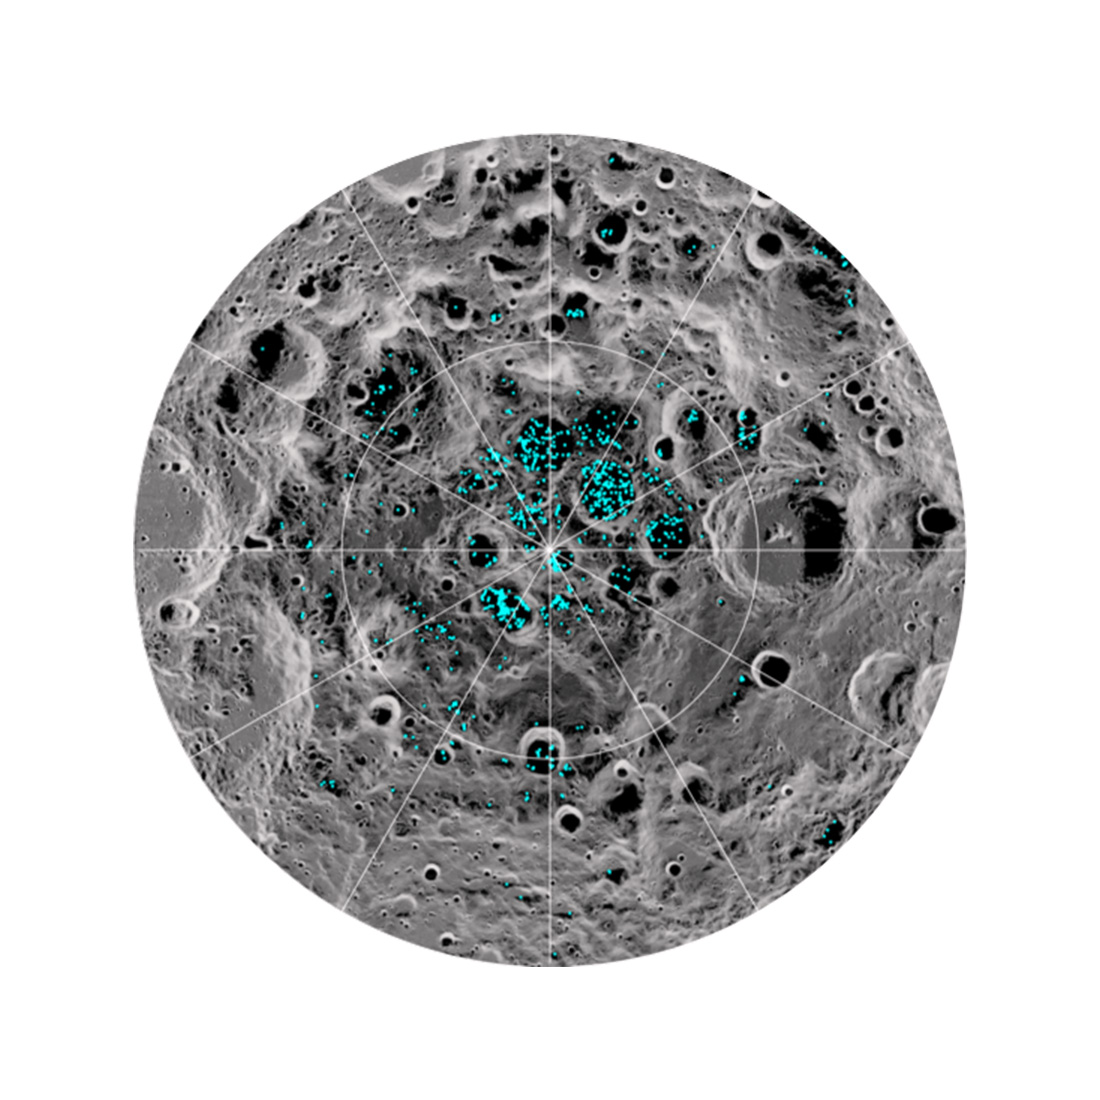 plotted over an image of the lunar surface.